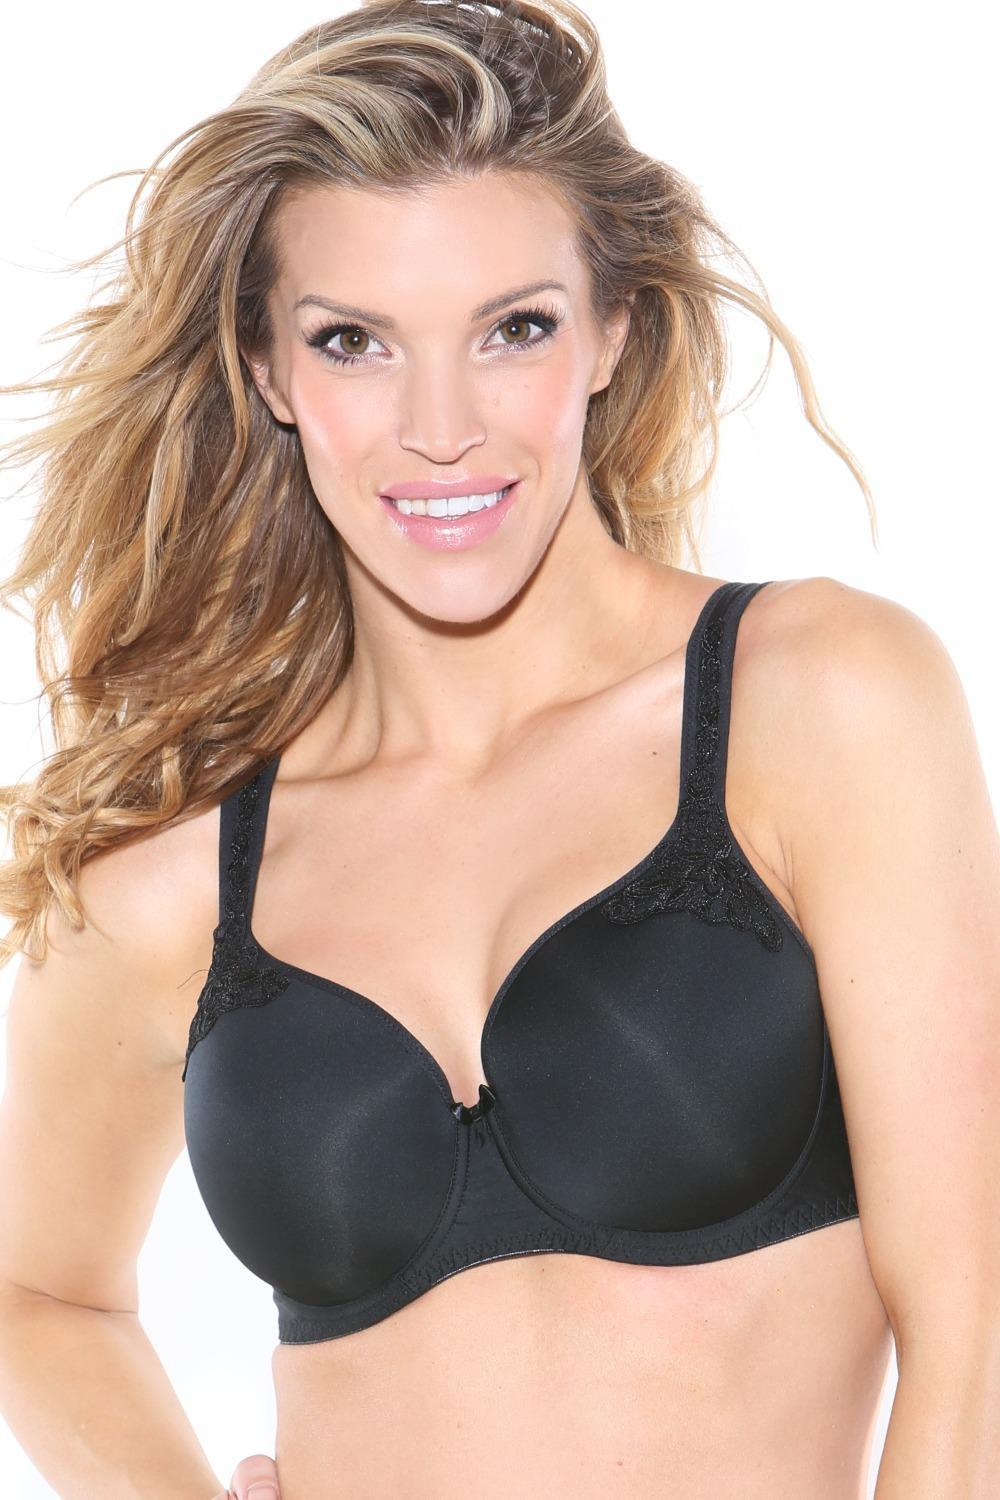 Maxine T-Shirt Bra - Black - Sheer Essentials Lingerie & Swim